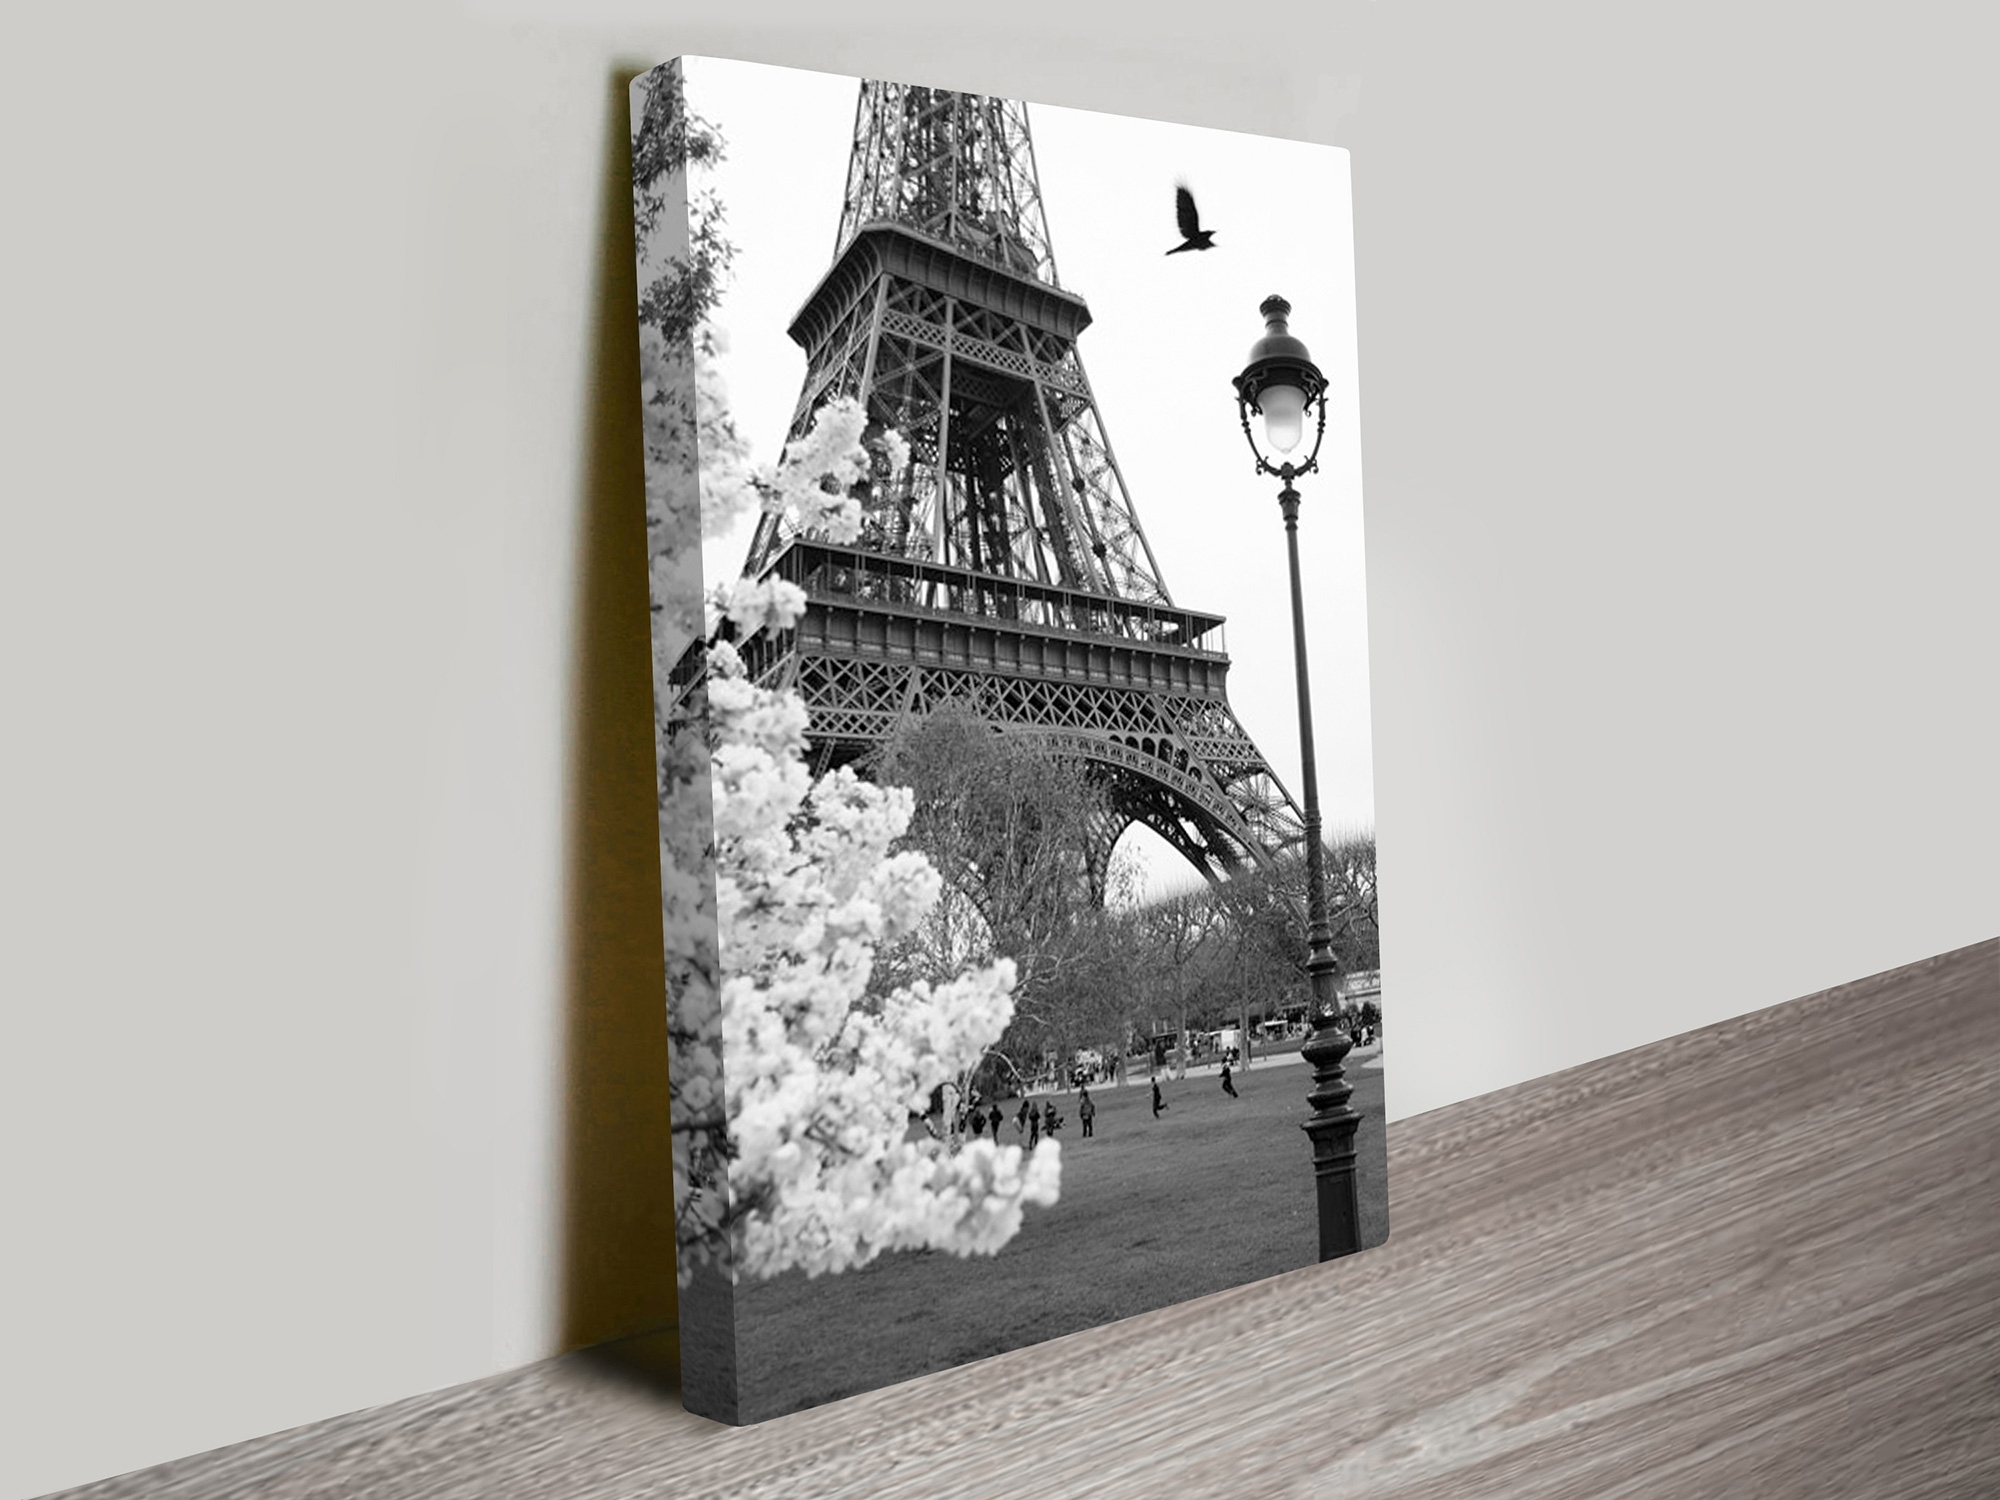 Eiffel Tower Portrait Canvas Artwork Regarding Most Up To Date Eiffel Tower Wall Art (View 4 of 15)